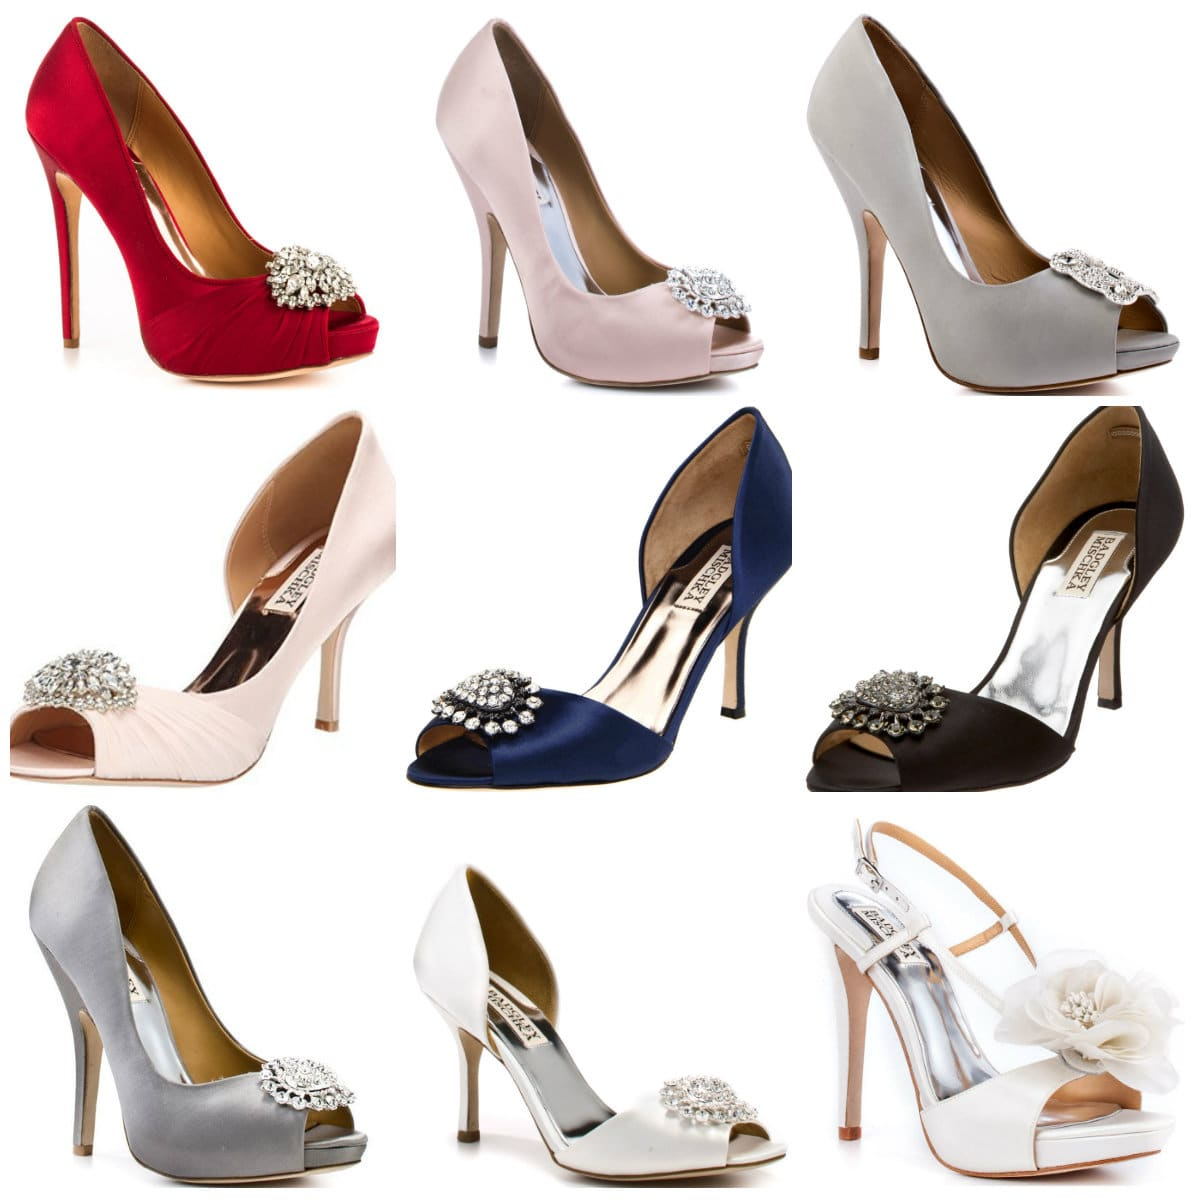 heels-collection